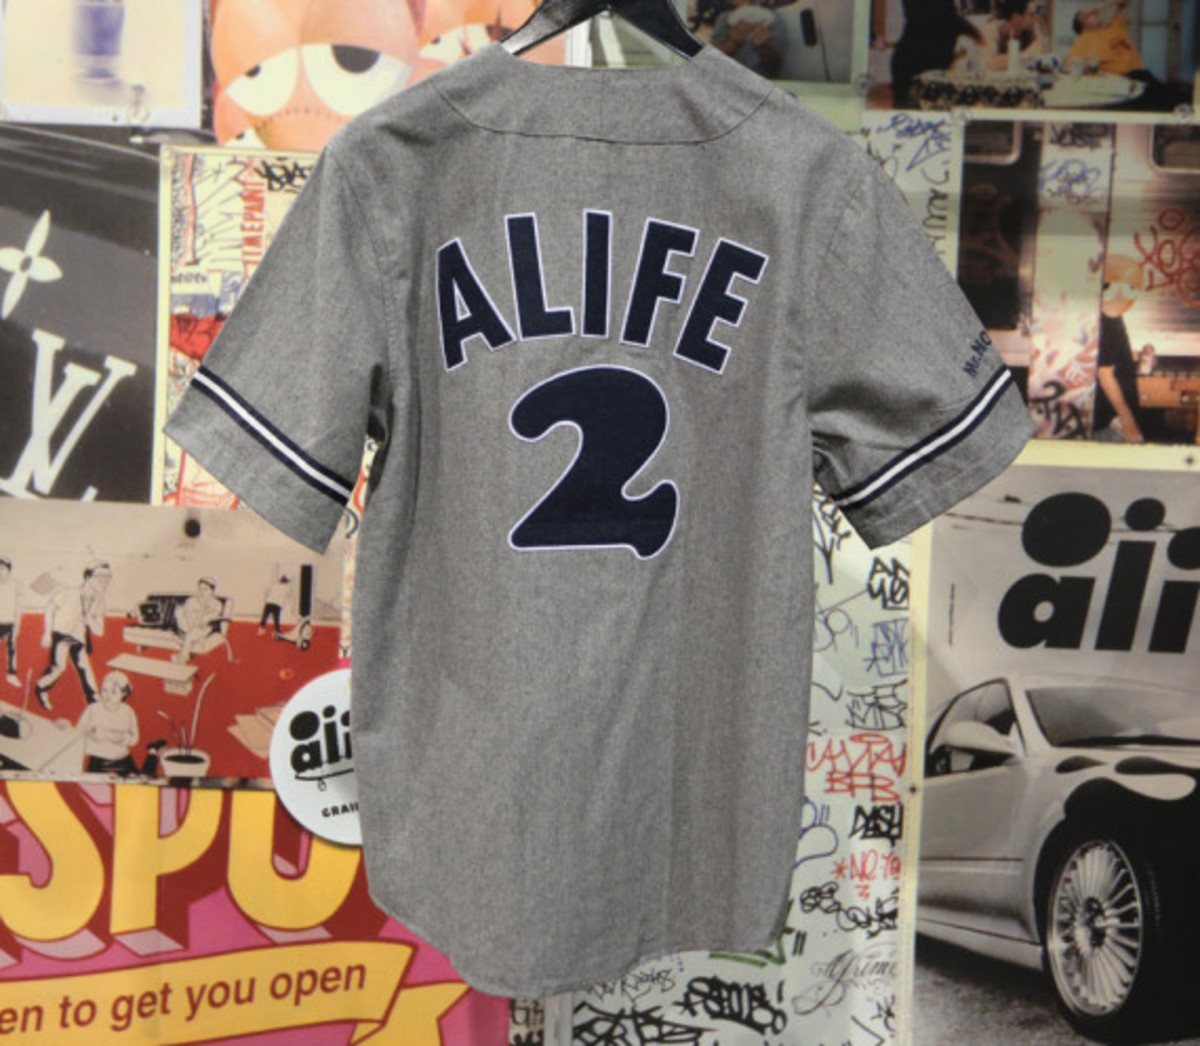 alife-fall-2014-preview-06